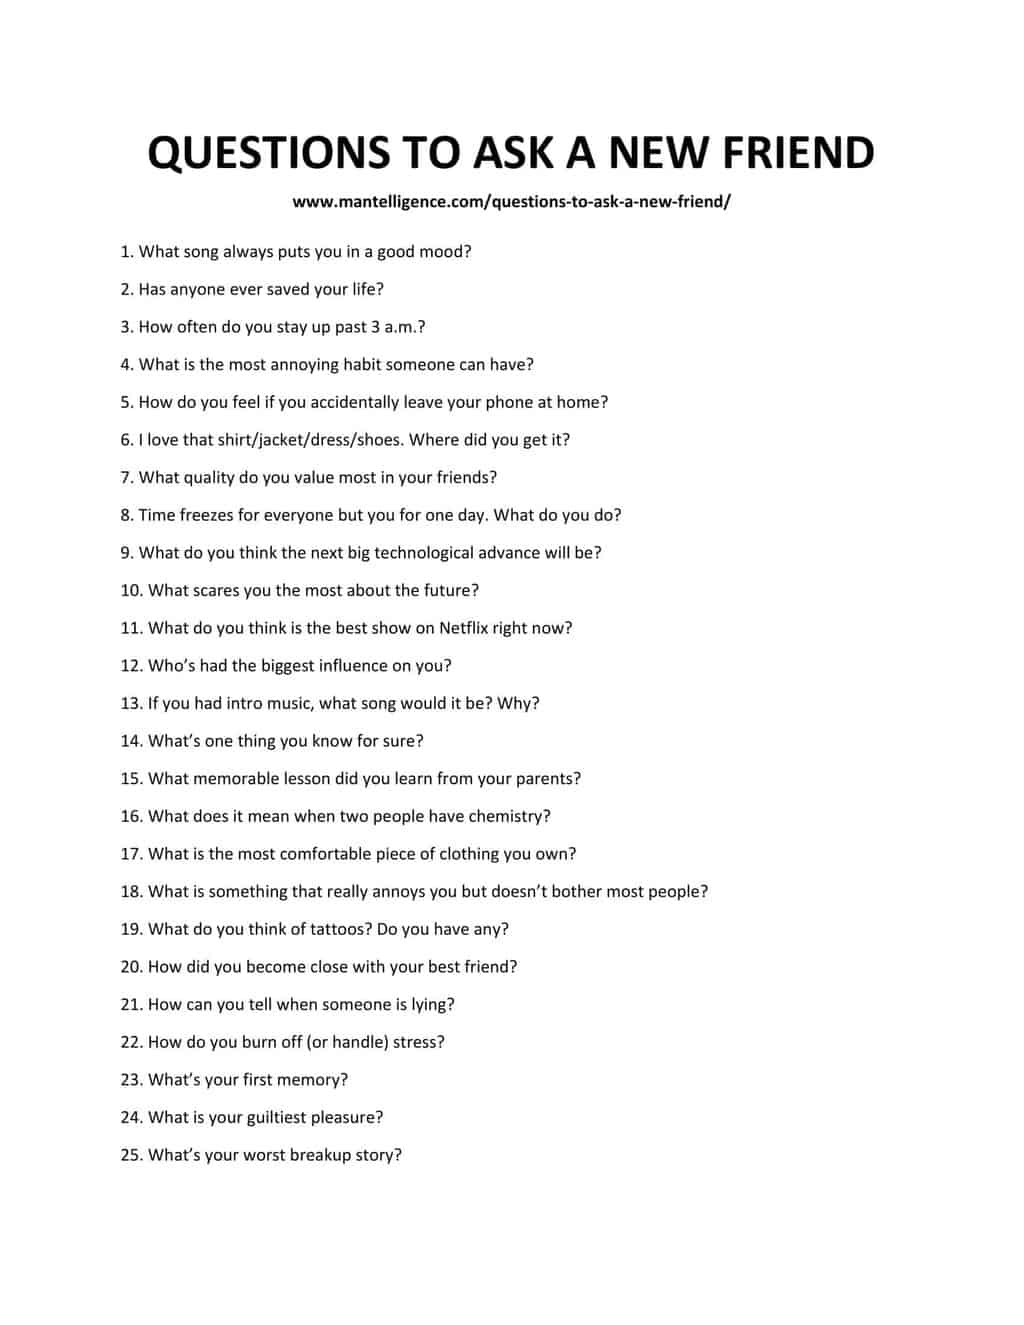 QUESTIONS TO ASK A NEW FRIEND-1